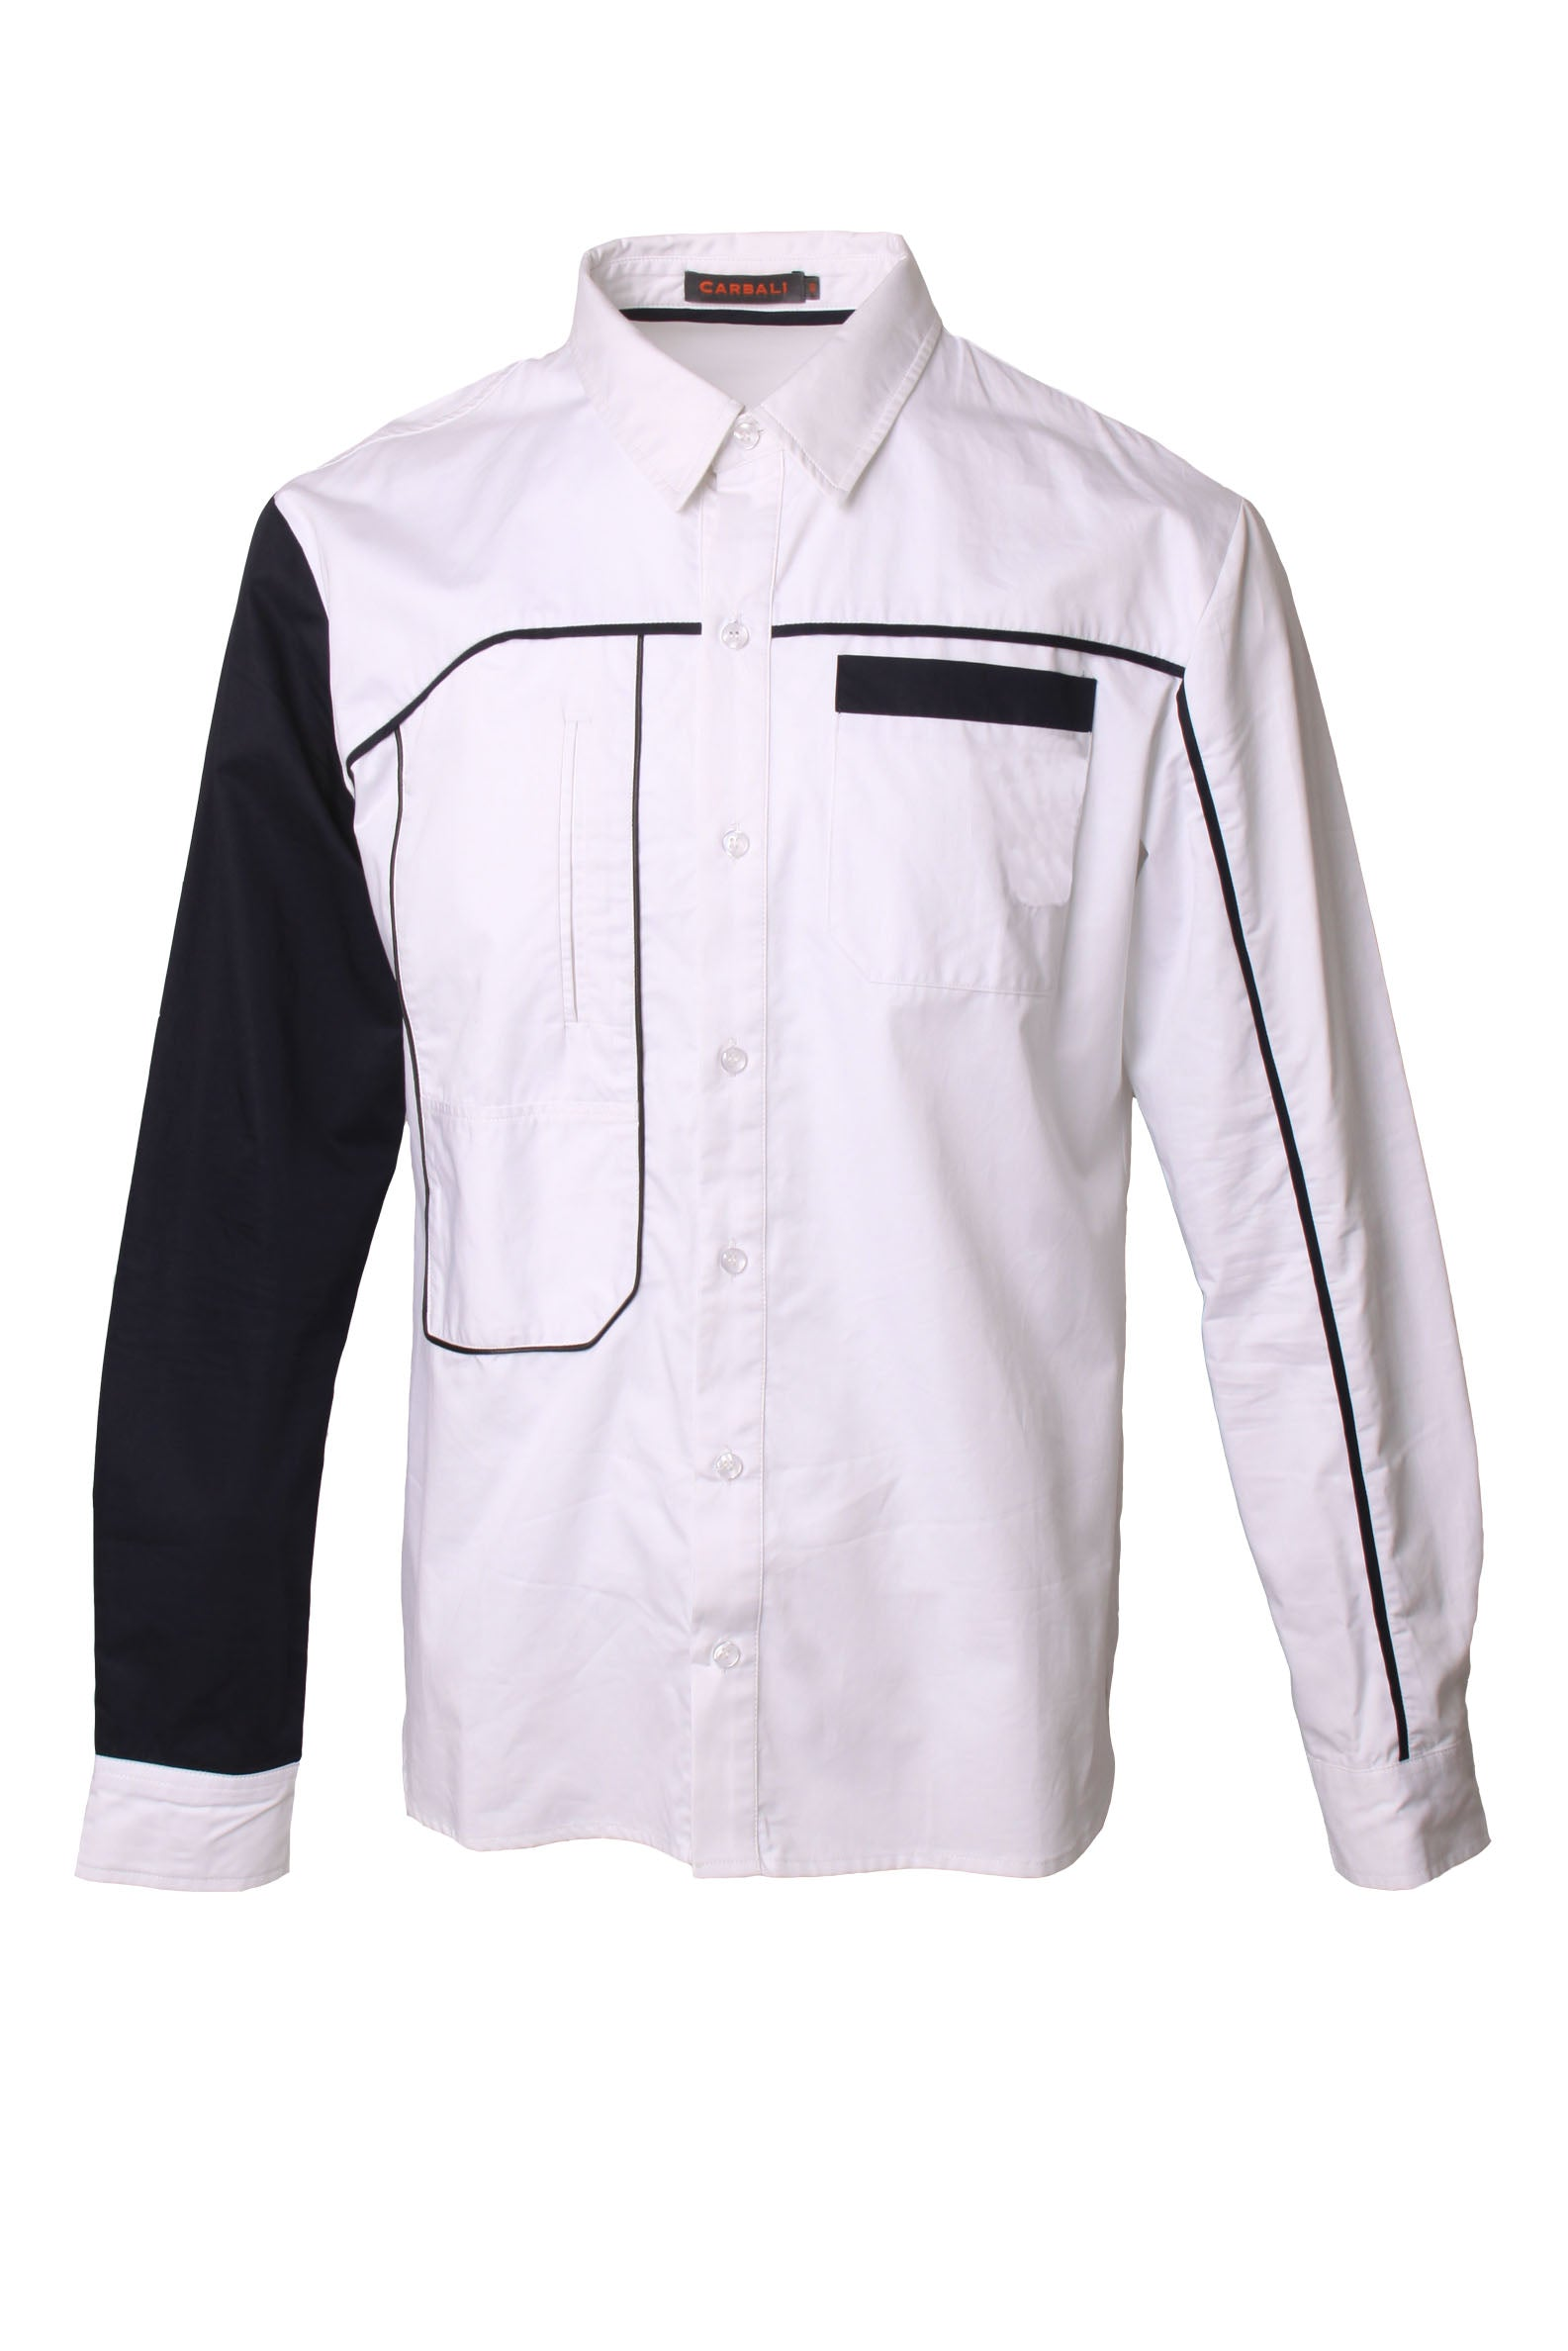 Knot embroidered logo shirt